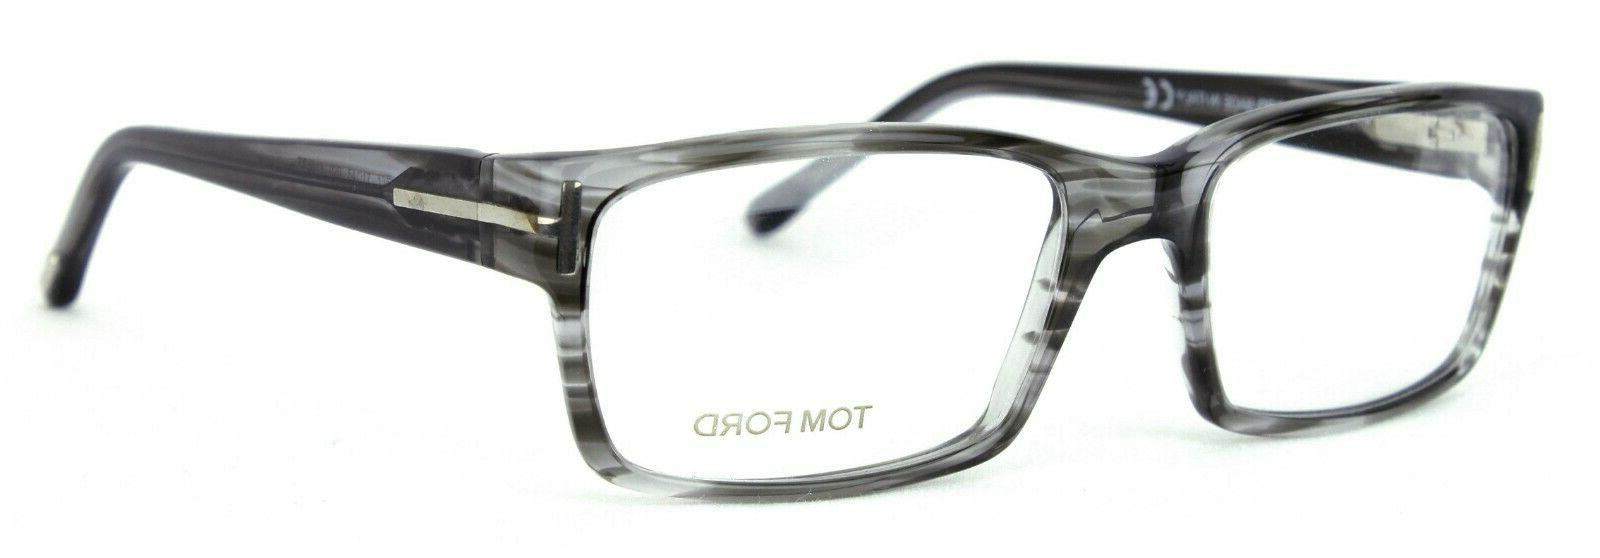 eyeglasses tf5013 020 grey stripe transparent msrp